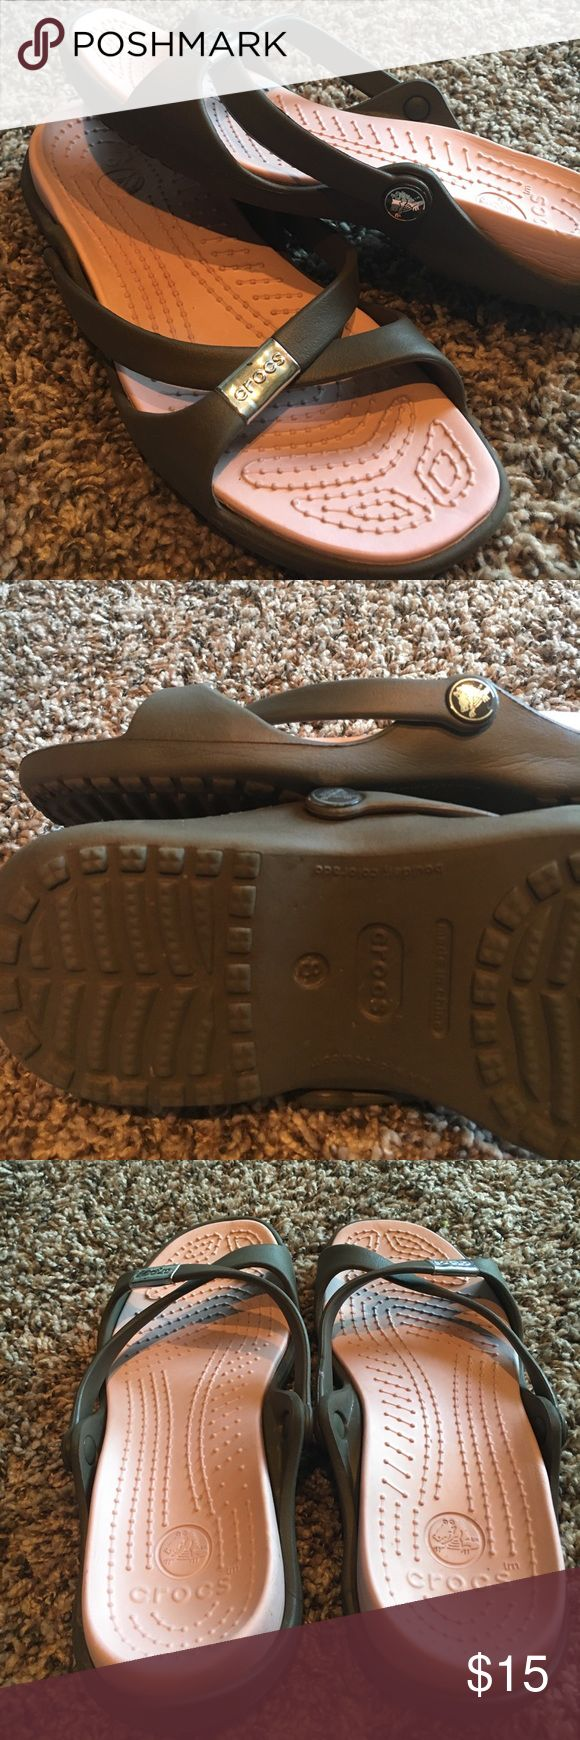 Size 8 strappy CROCS sandals Gently worn, excellent condition, only flaw is some paint/ plastic coating is chipping off the CROCS label on the strap- see last 2 pictures. smoke free. 🛍Open to reasonable offers ONLY please! I will not consider unreasonable offers that are half the asking price. No trades. No Modeling. And please keep in mind Poshmark sets the $6.49 flat rate shipping. Thank you!☺ CROCS Shoes Sandals